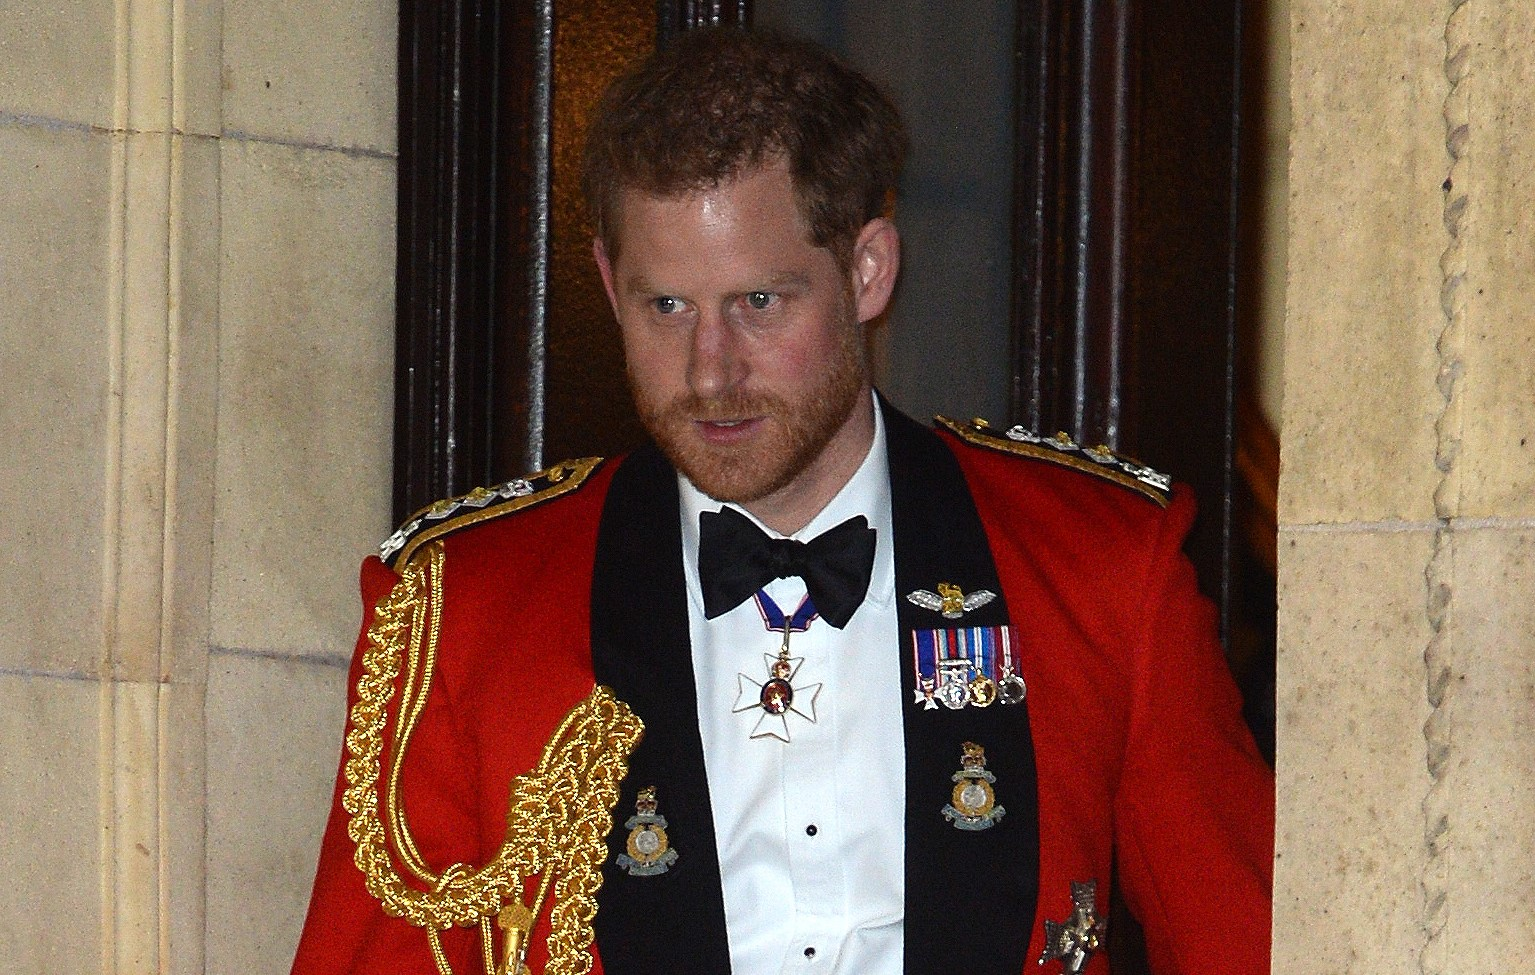 Prince Harry 'misses army life and tells friends life has been turned upside down'